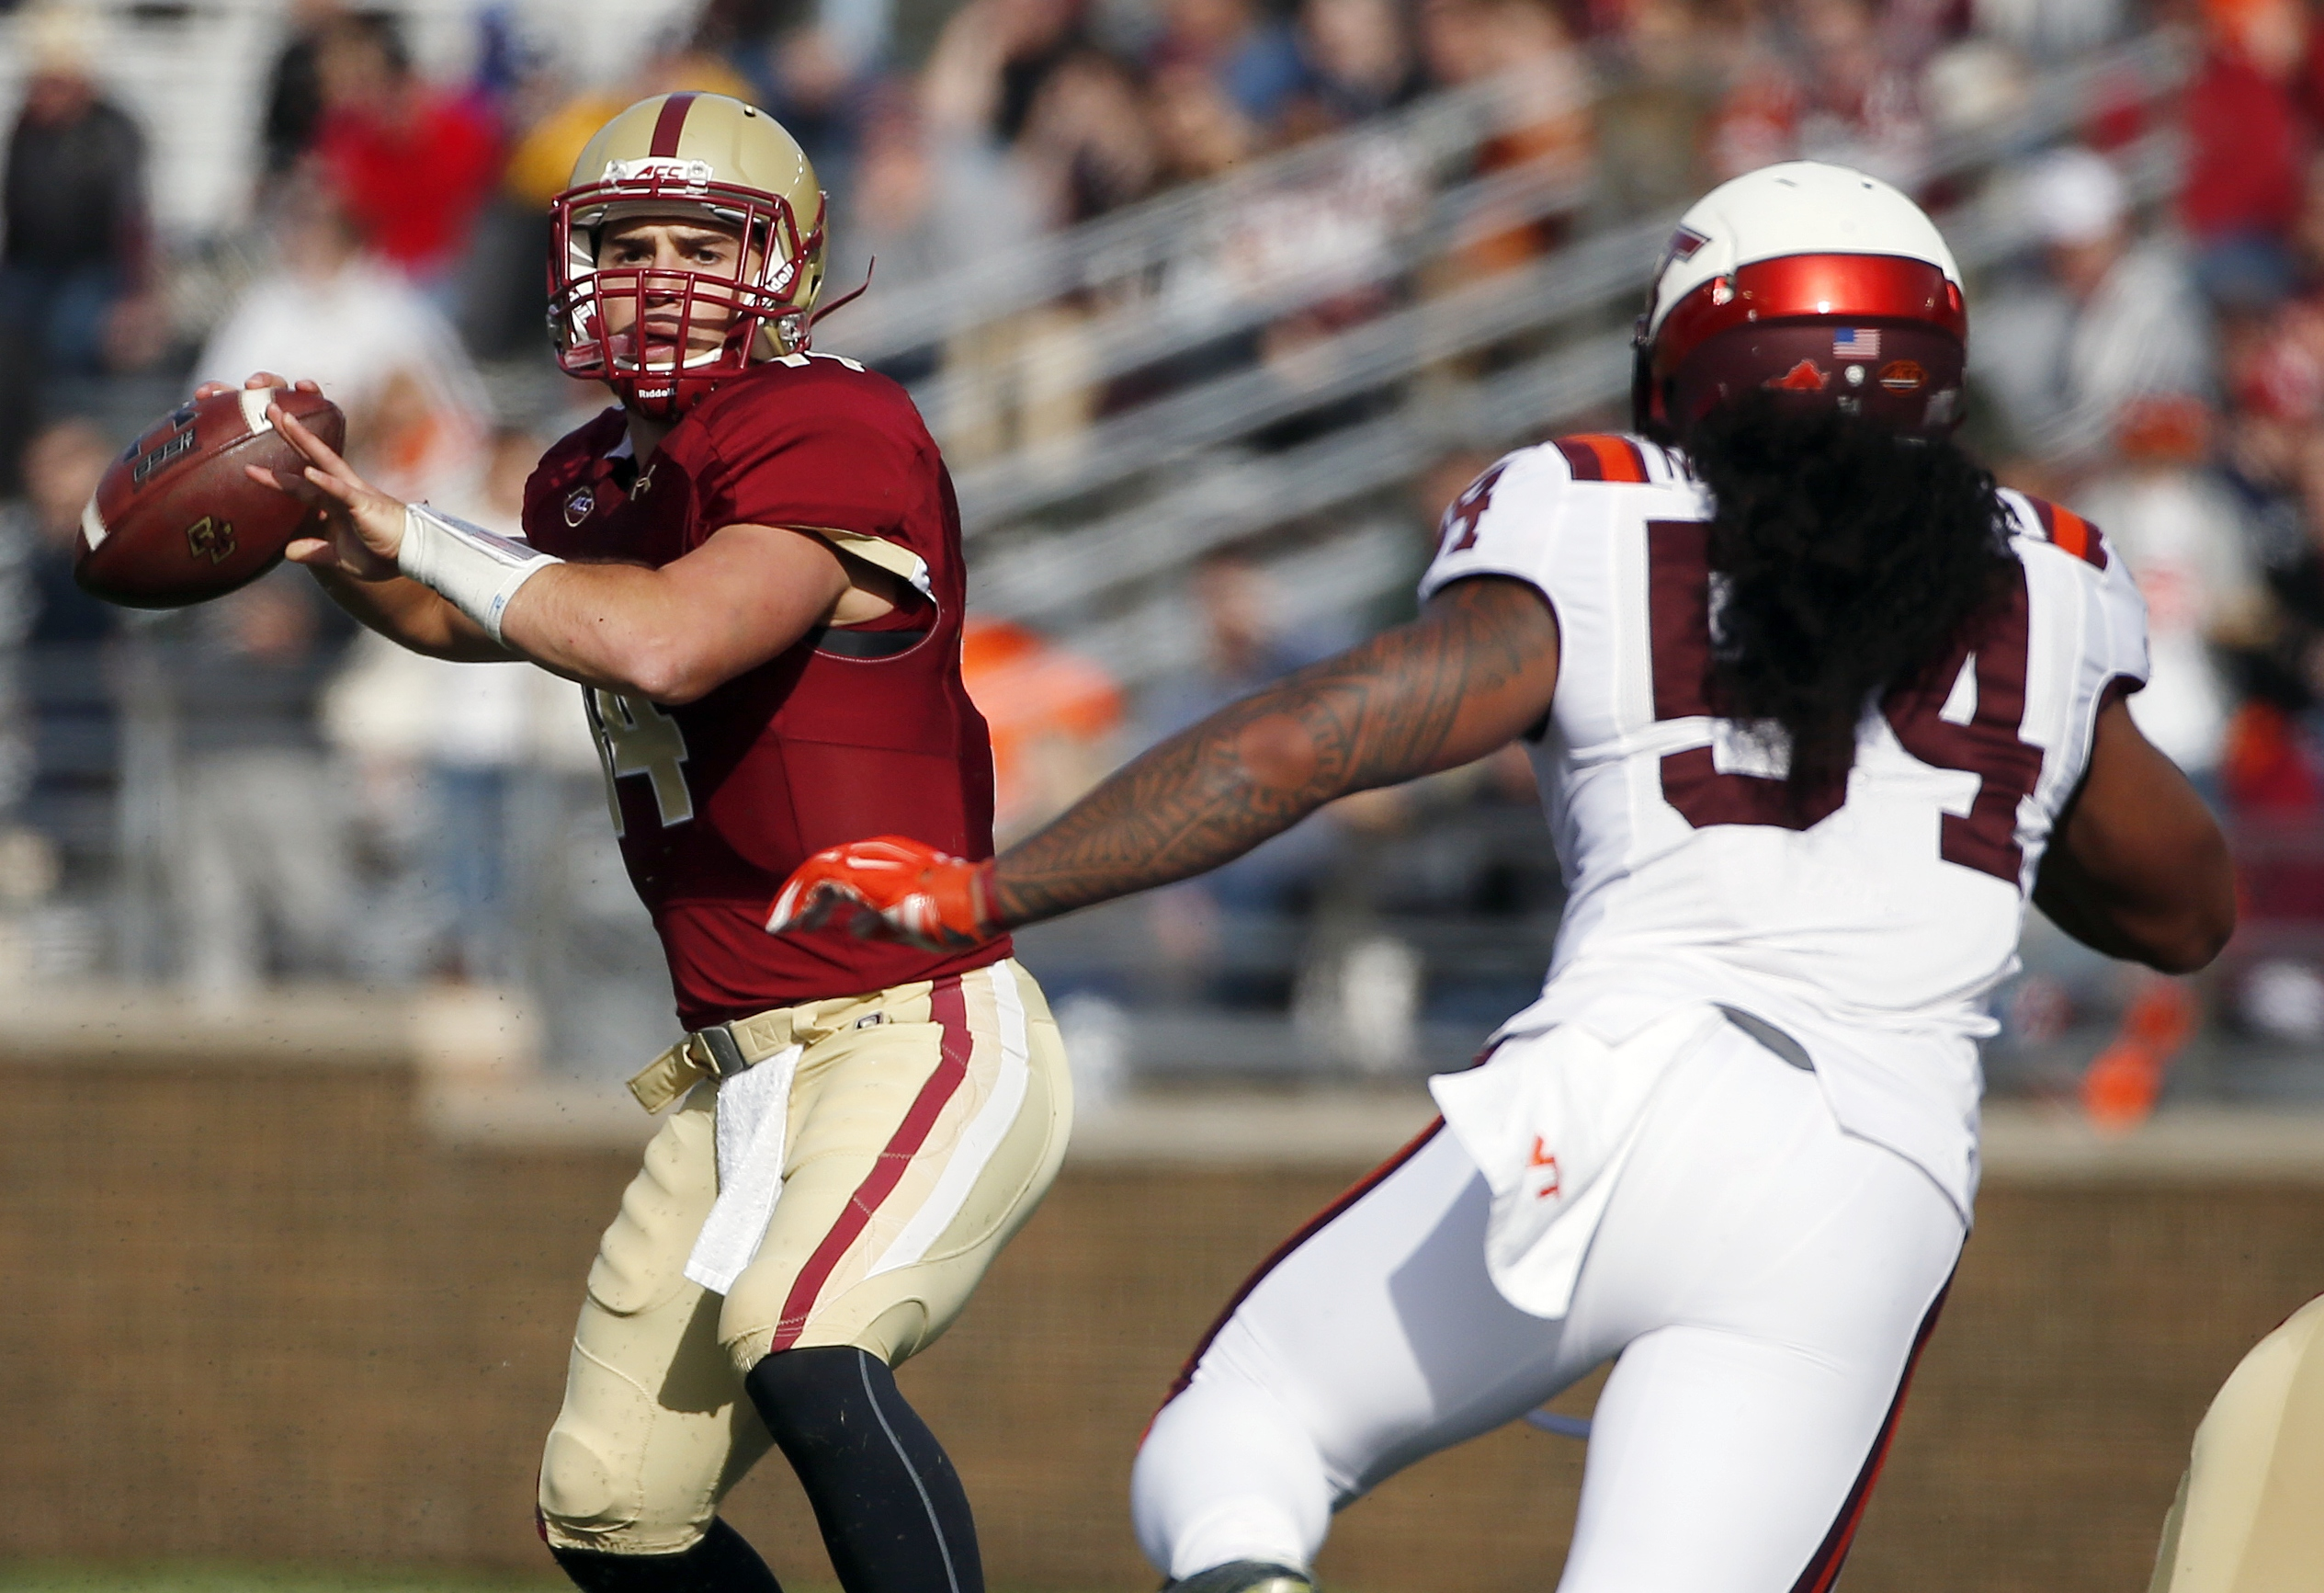 Boston College quarterback John Fadule (14) looks to pass under pressure from Virginia Tech linebacker Andrew Motuapuaka (54) during the second quarter of an NCAA college football game in Boston, Saturday, Oct. 31, 2015. (AP Photo/Michael Dwyer)